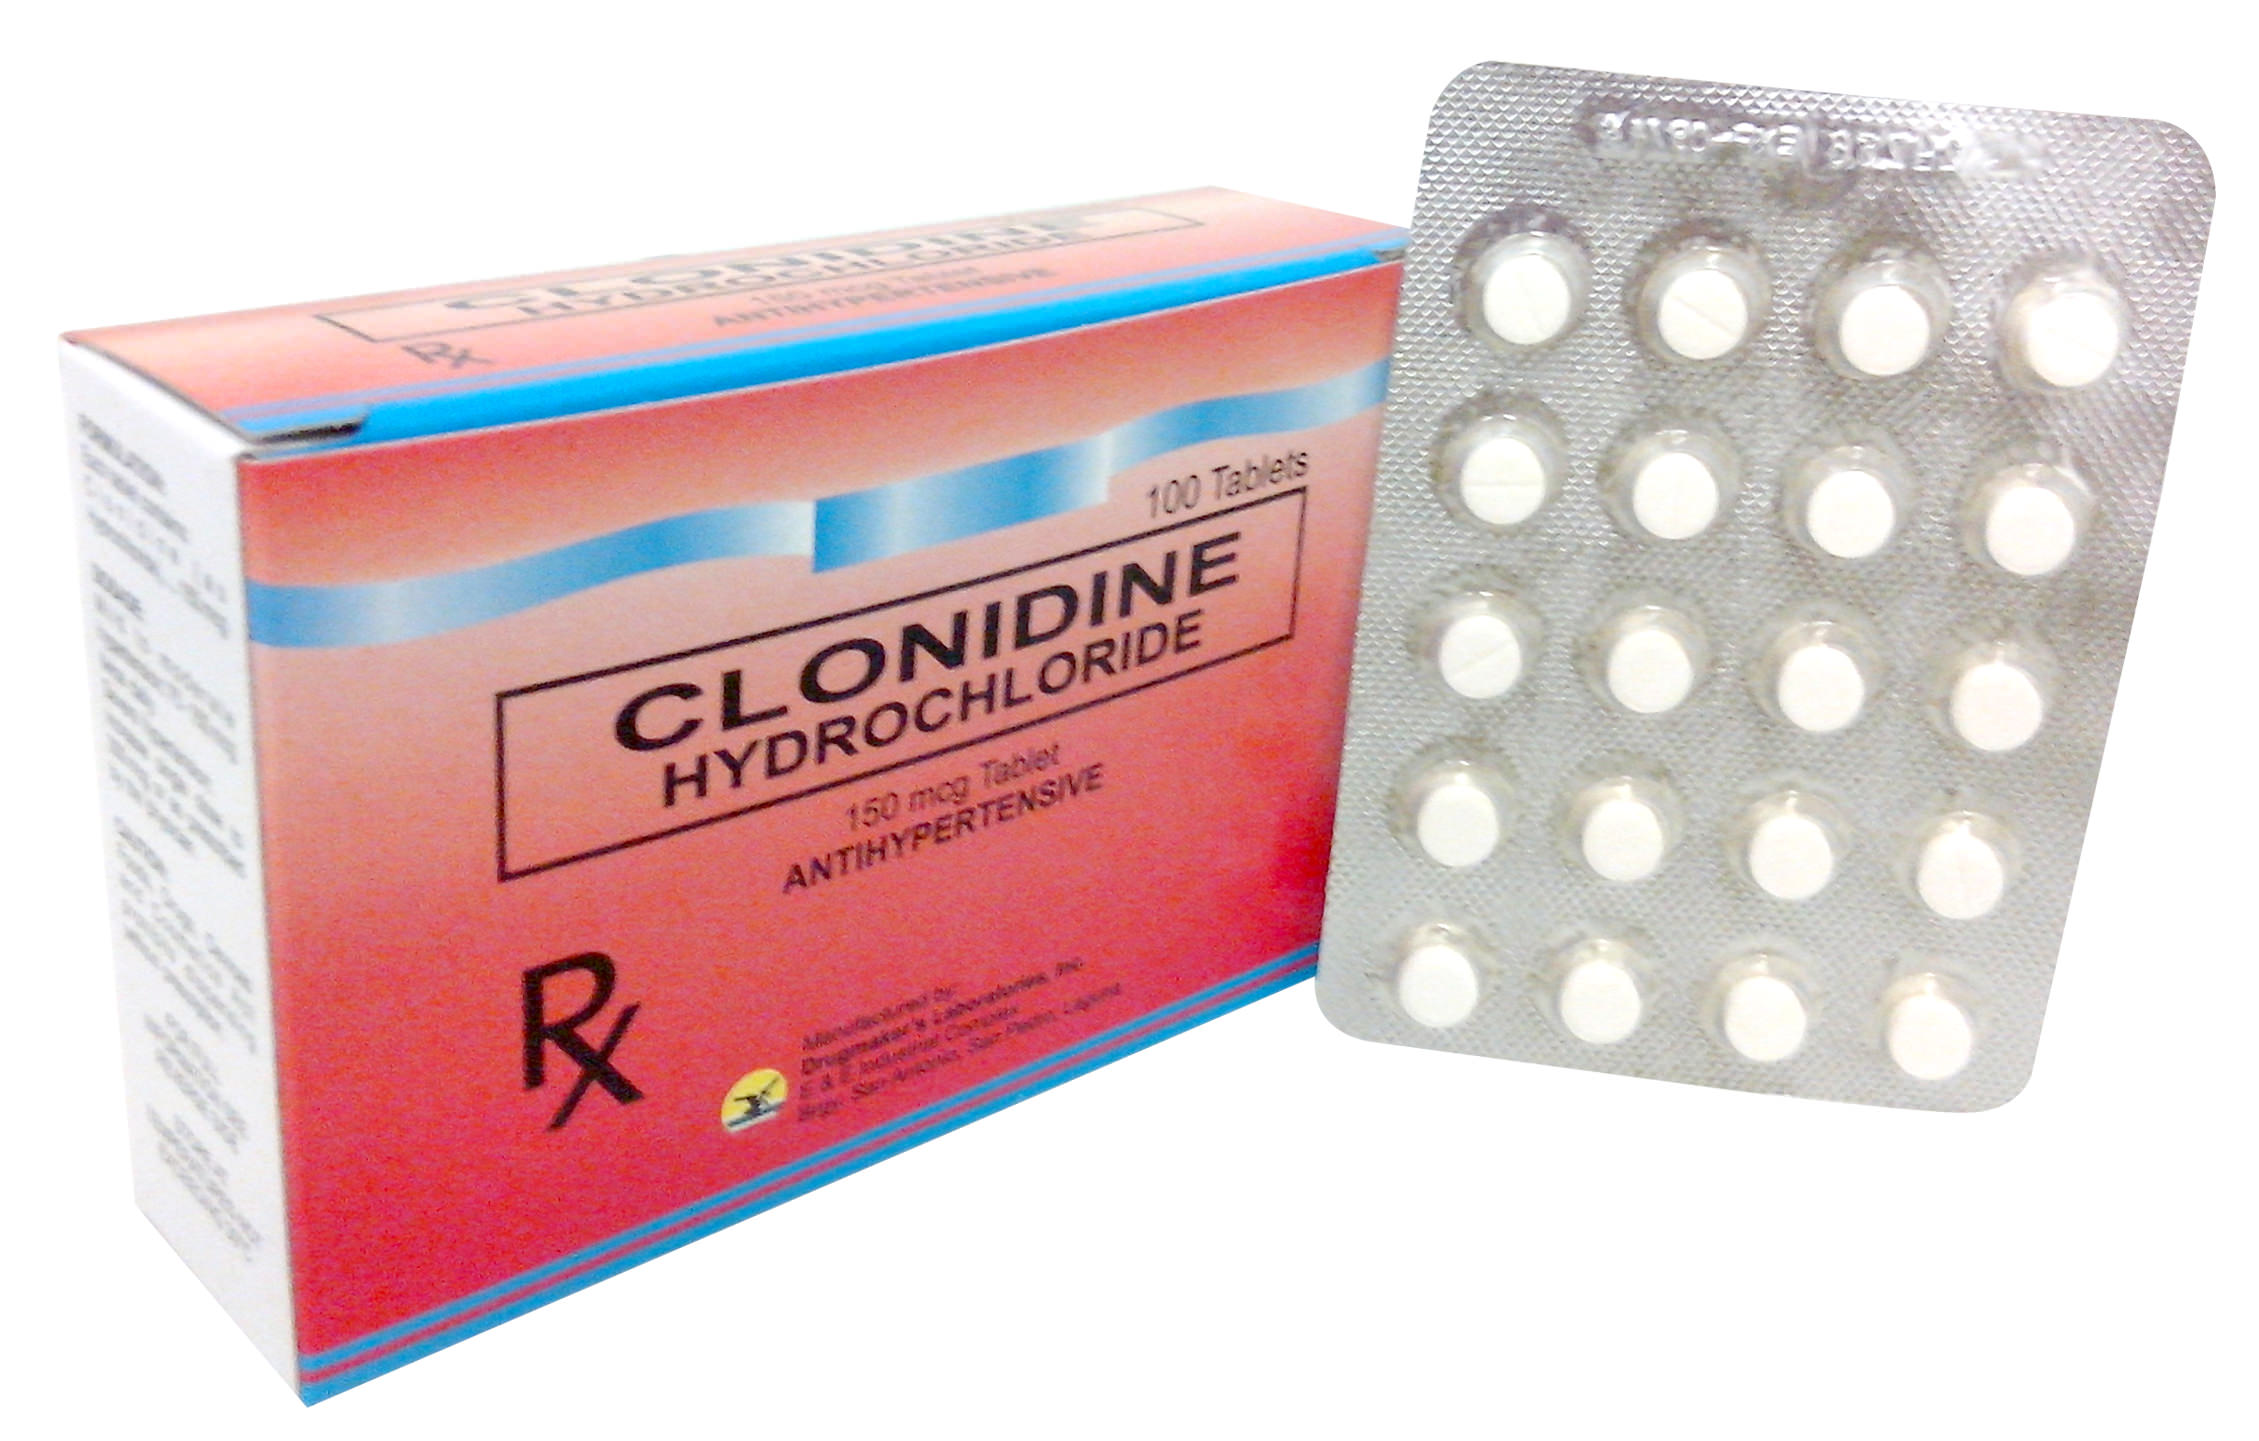 Clonidine Side Effects, Upsides, Downsides & How it Works